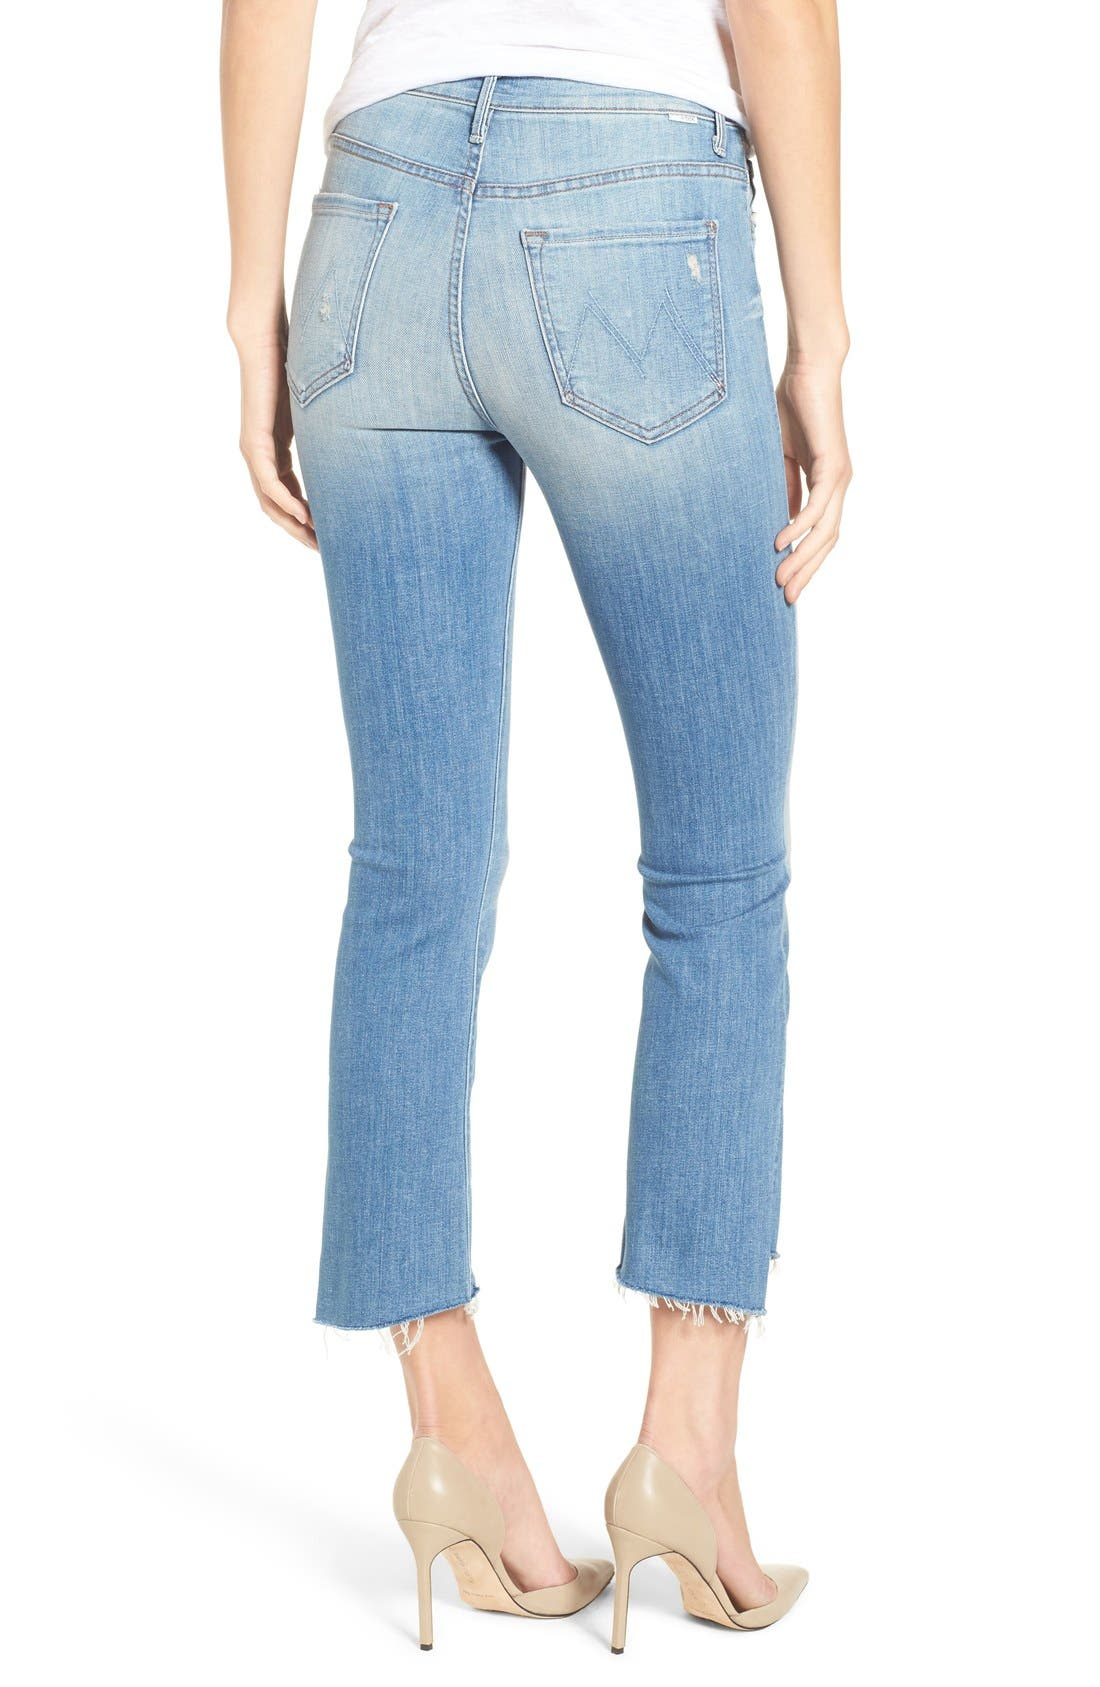 'The Insider' Crop Step Fray Jeans,                             Alternate thumbnail 2, color,                             SHAKE WELL